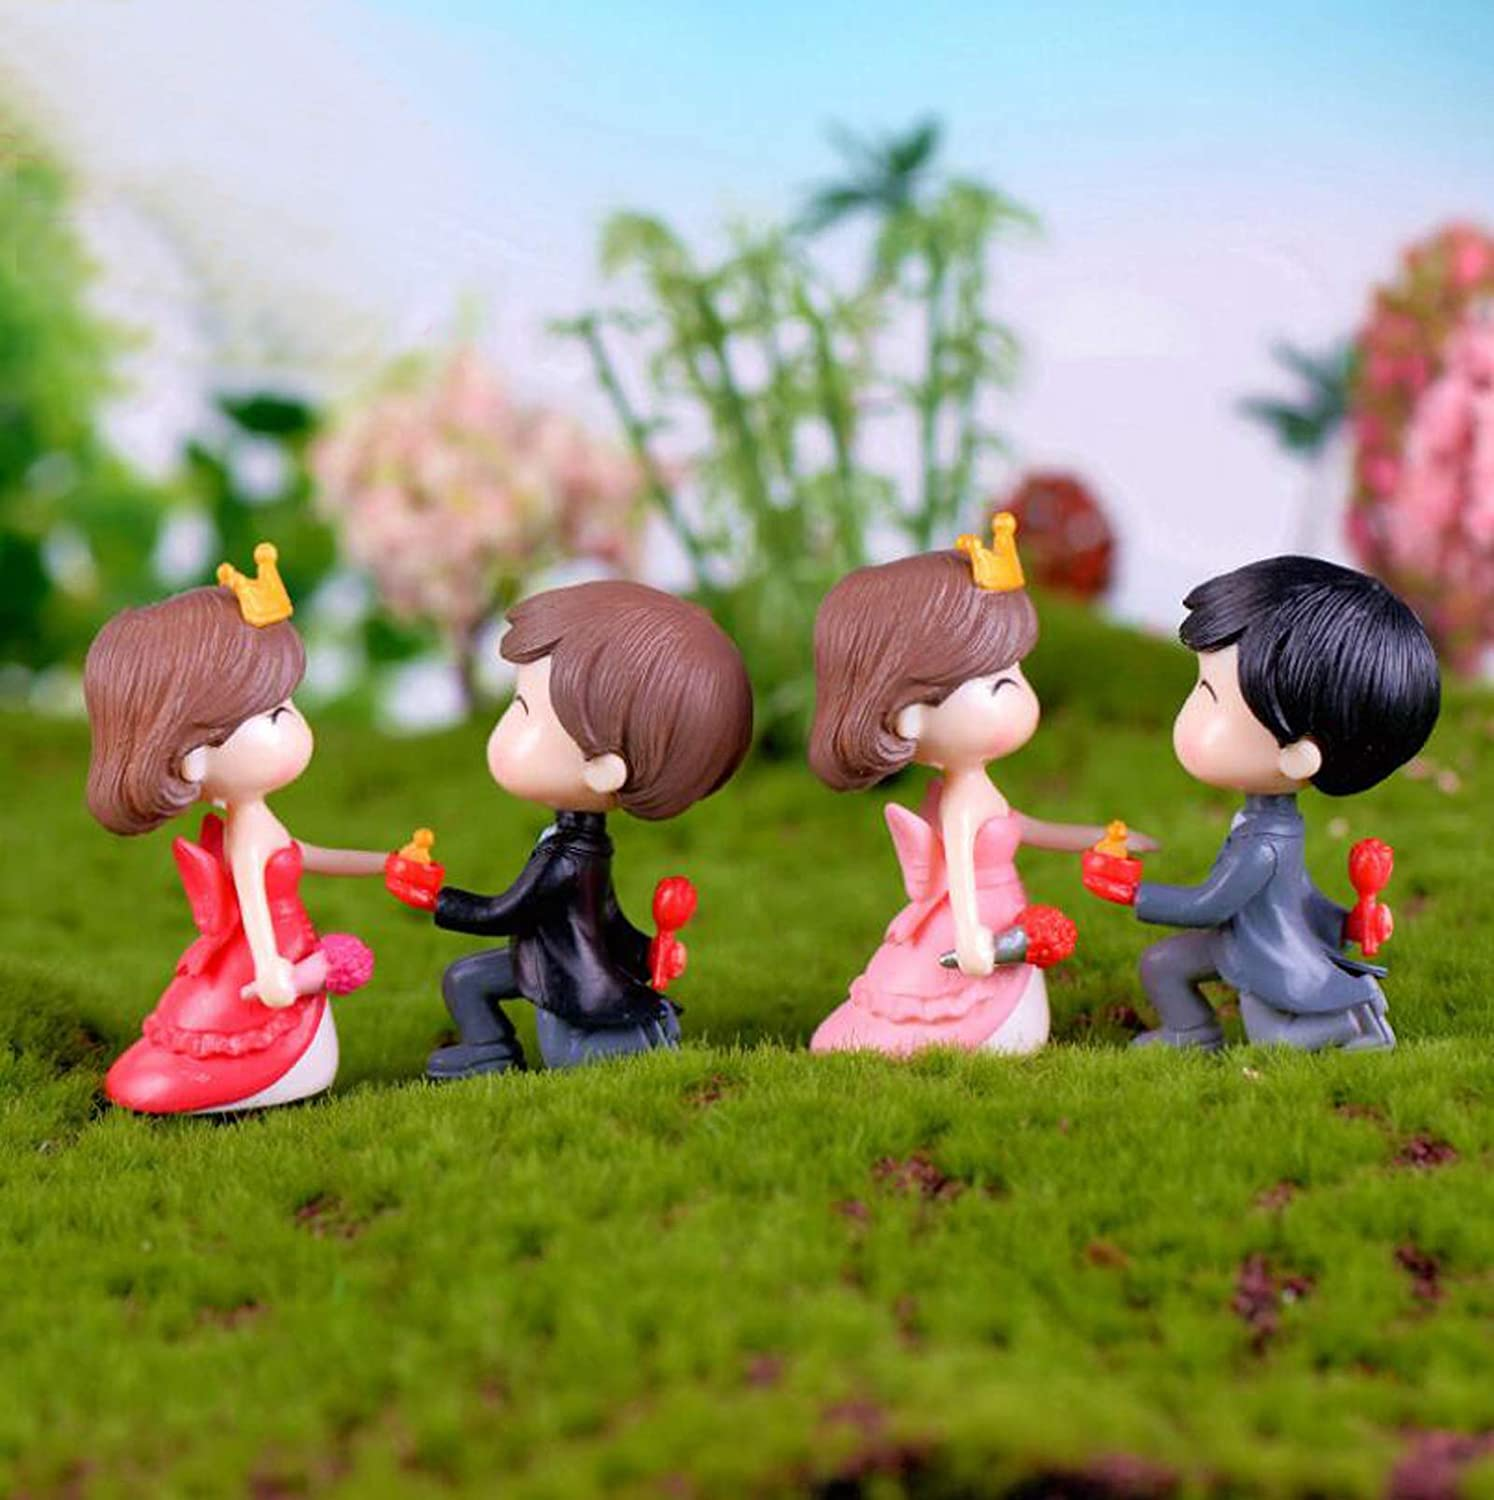 SweetGifts Propose Marriage Theme Bride and Groom Couple Figurines Miniatures Marry Me Ornaments Crafts Fairy Garden Bonsai Dollhouse 4PCS